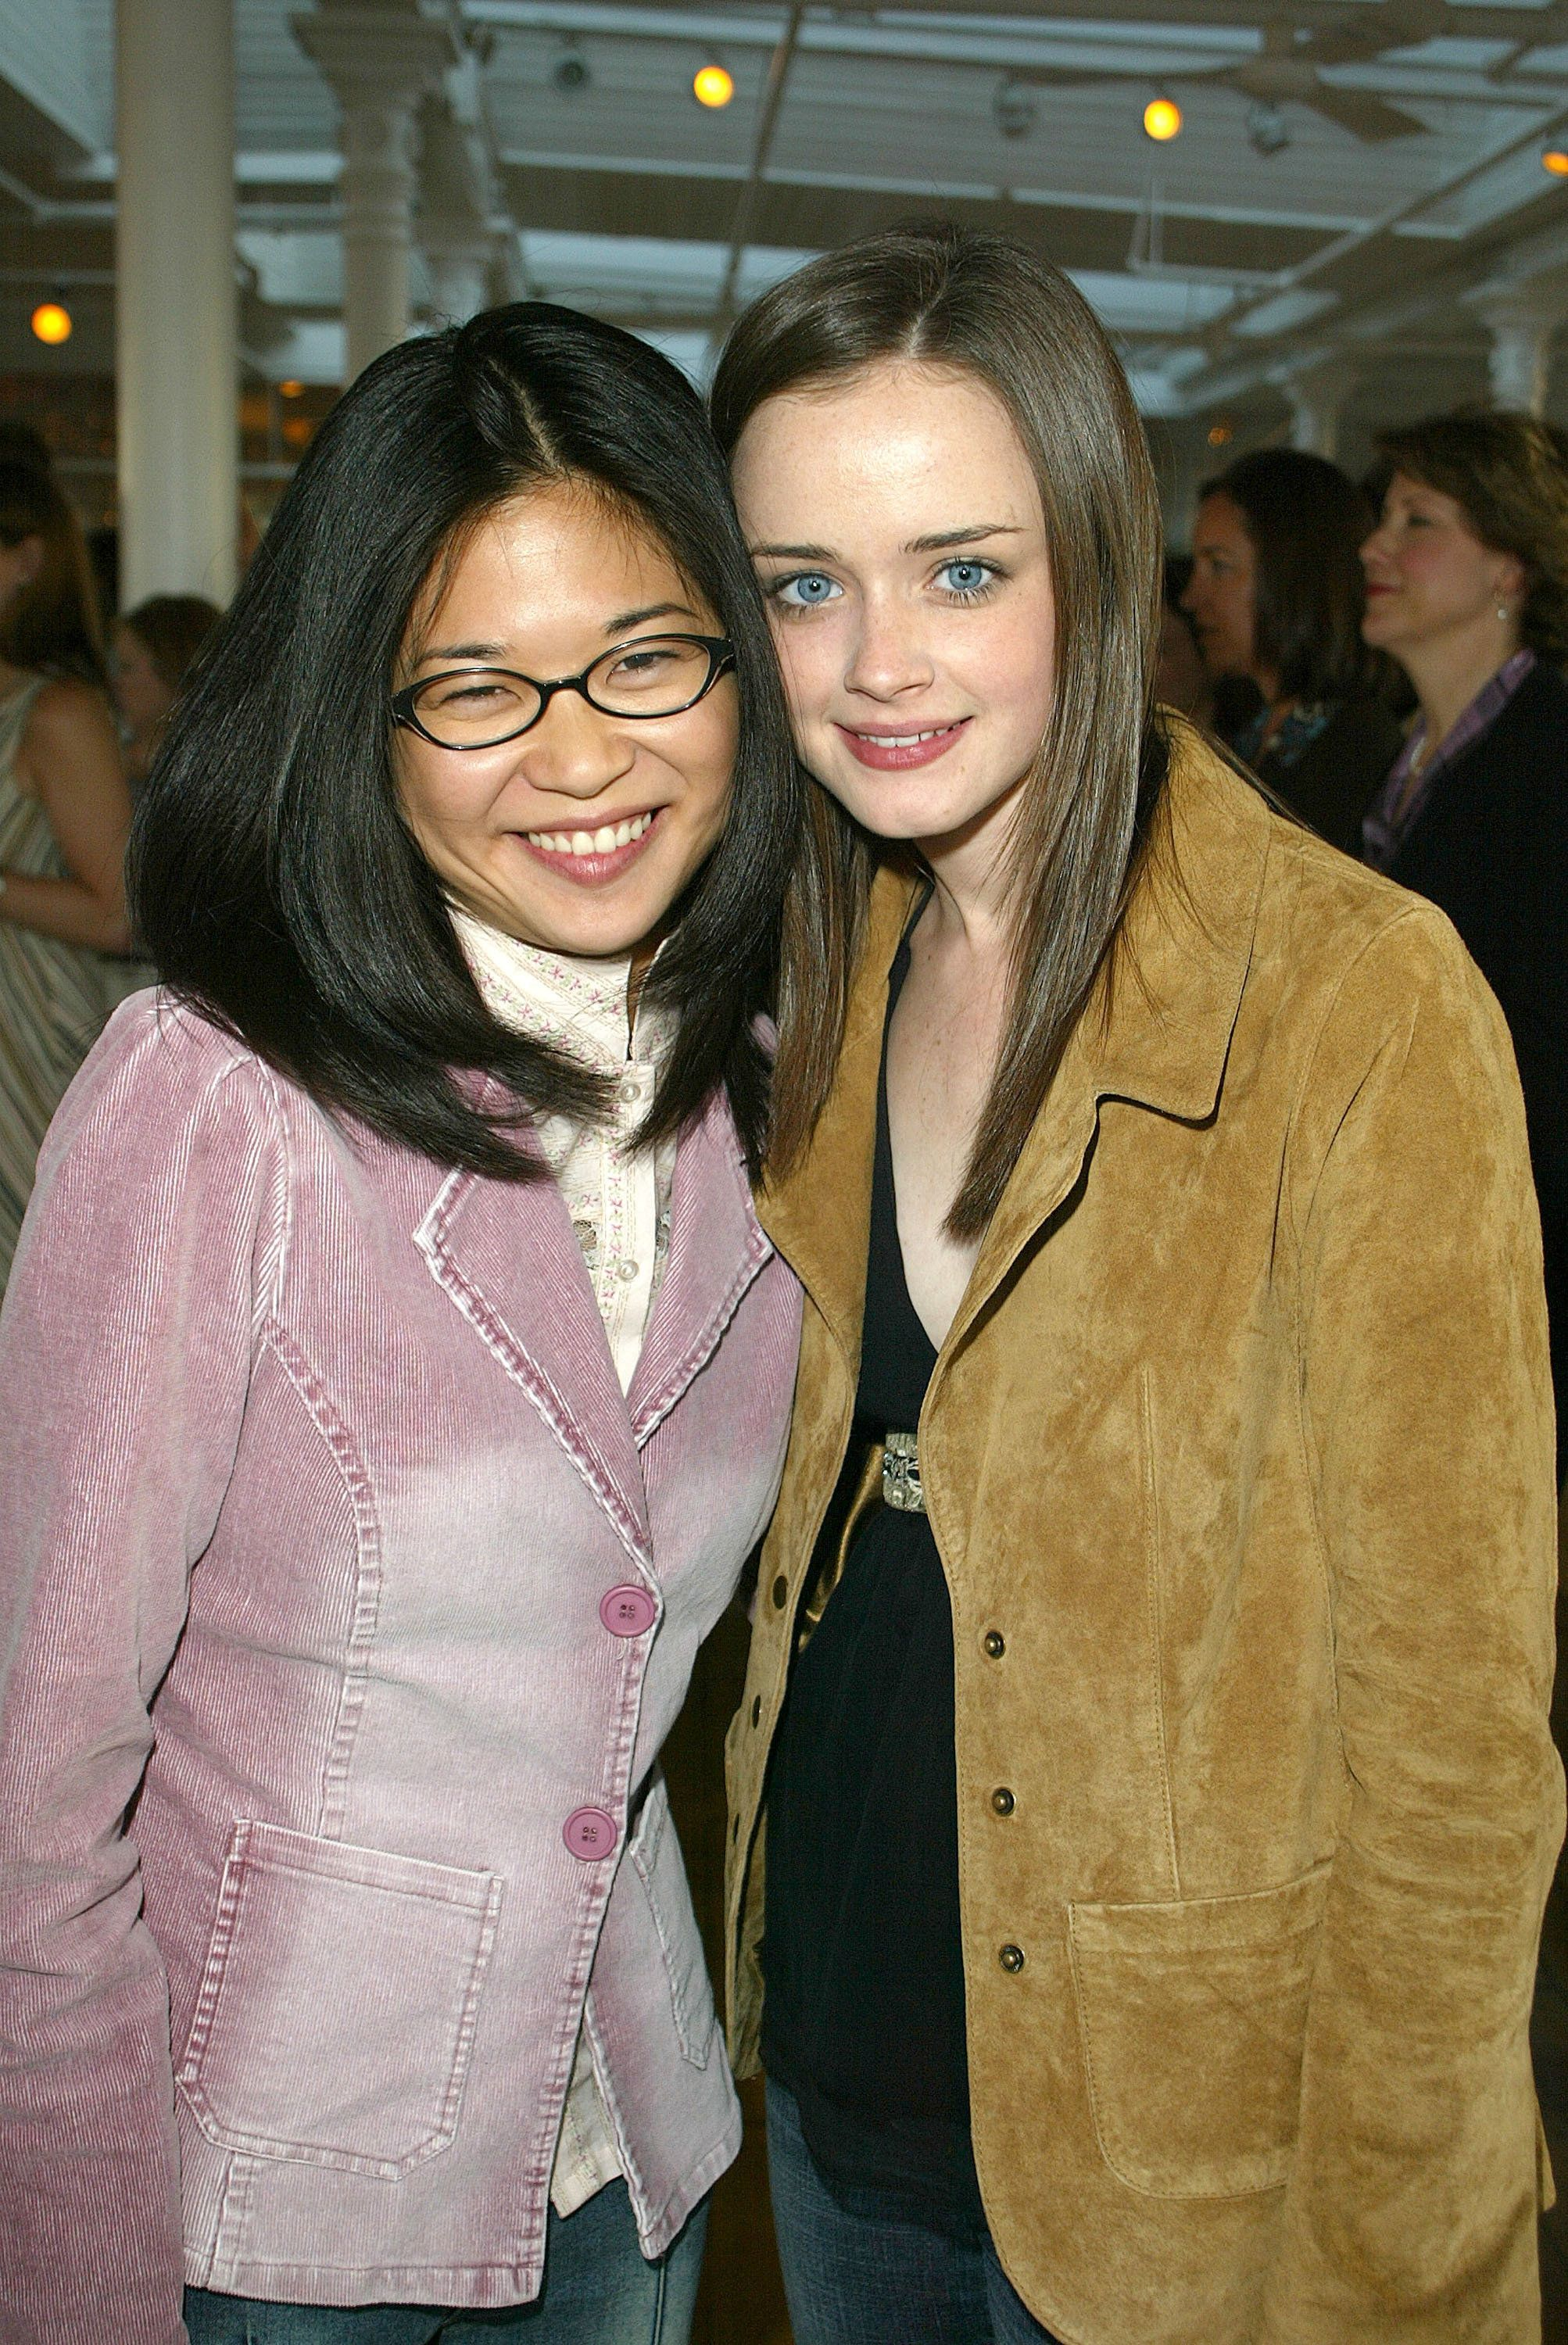 Keiko Agena and actress Alexis Bledel attend a WB Casting Call in 2002. (Photo by Jimi Celeste/Getty Images)